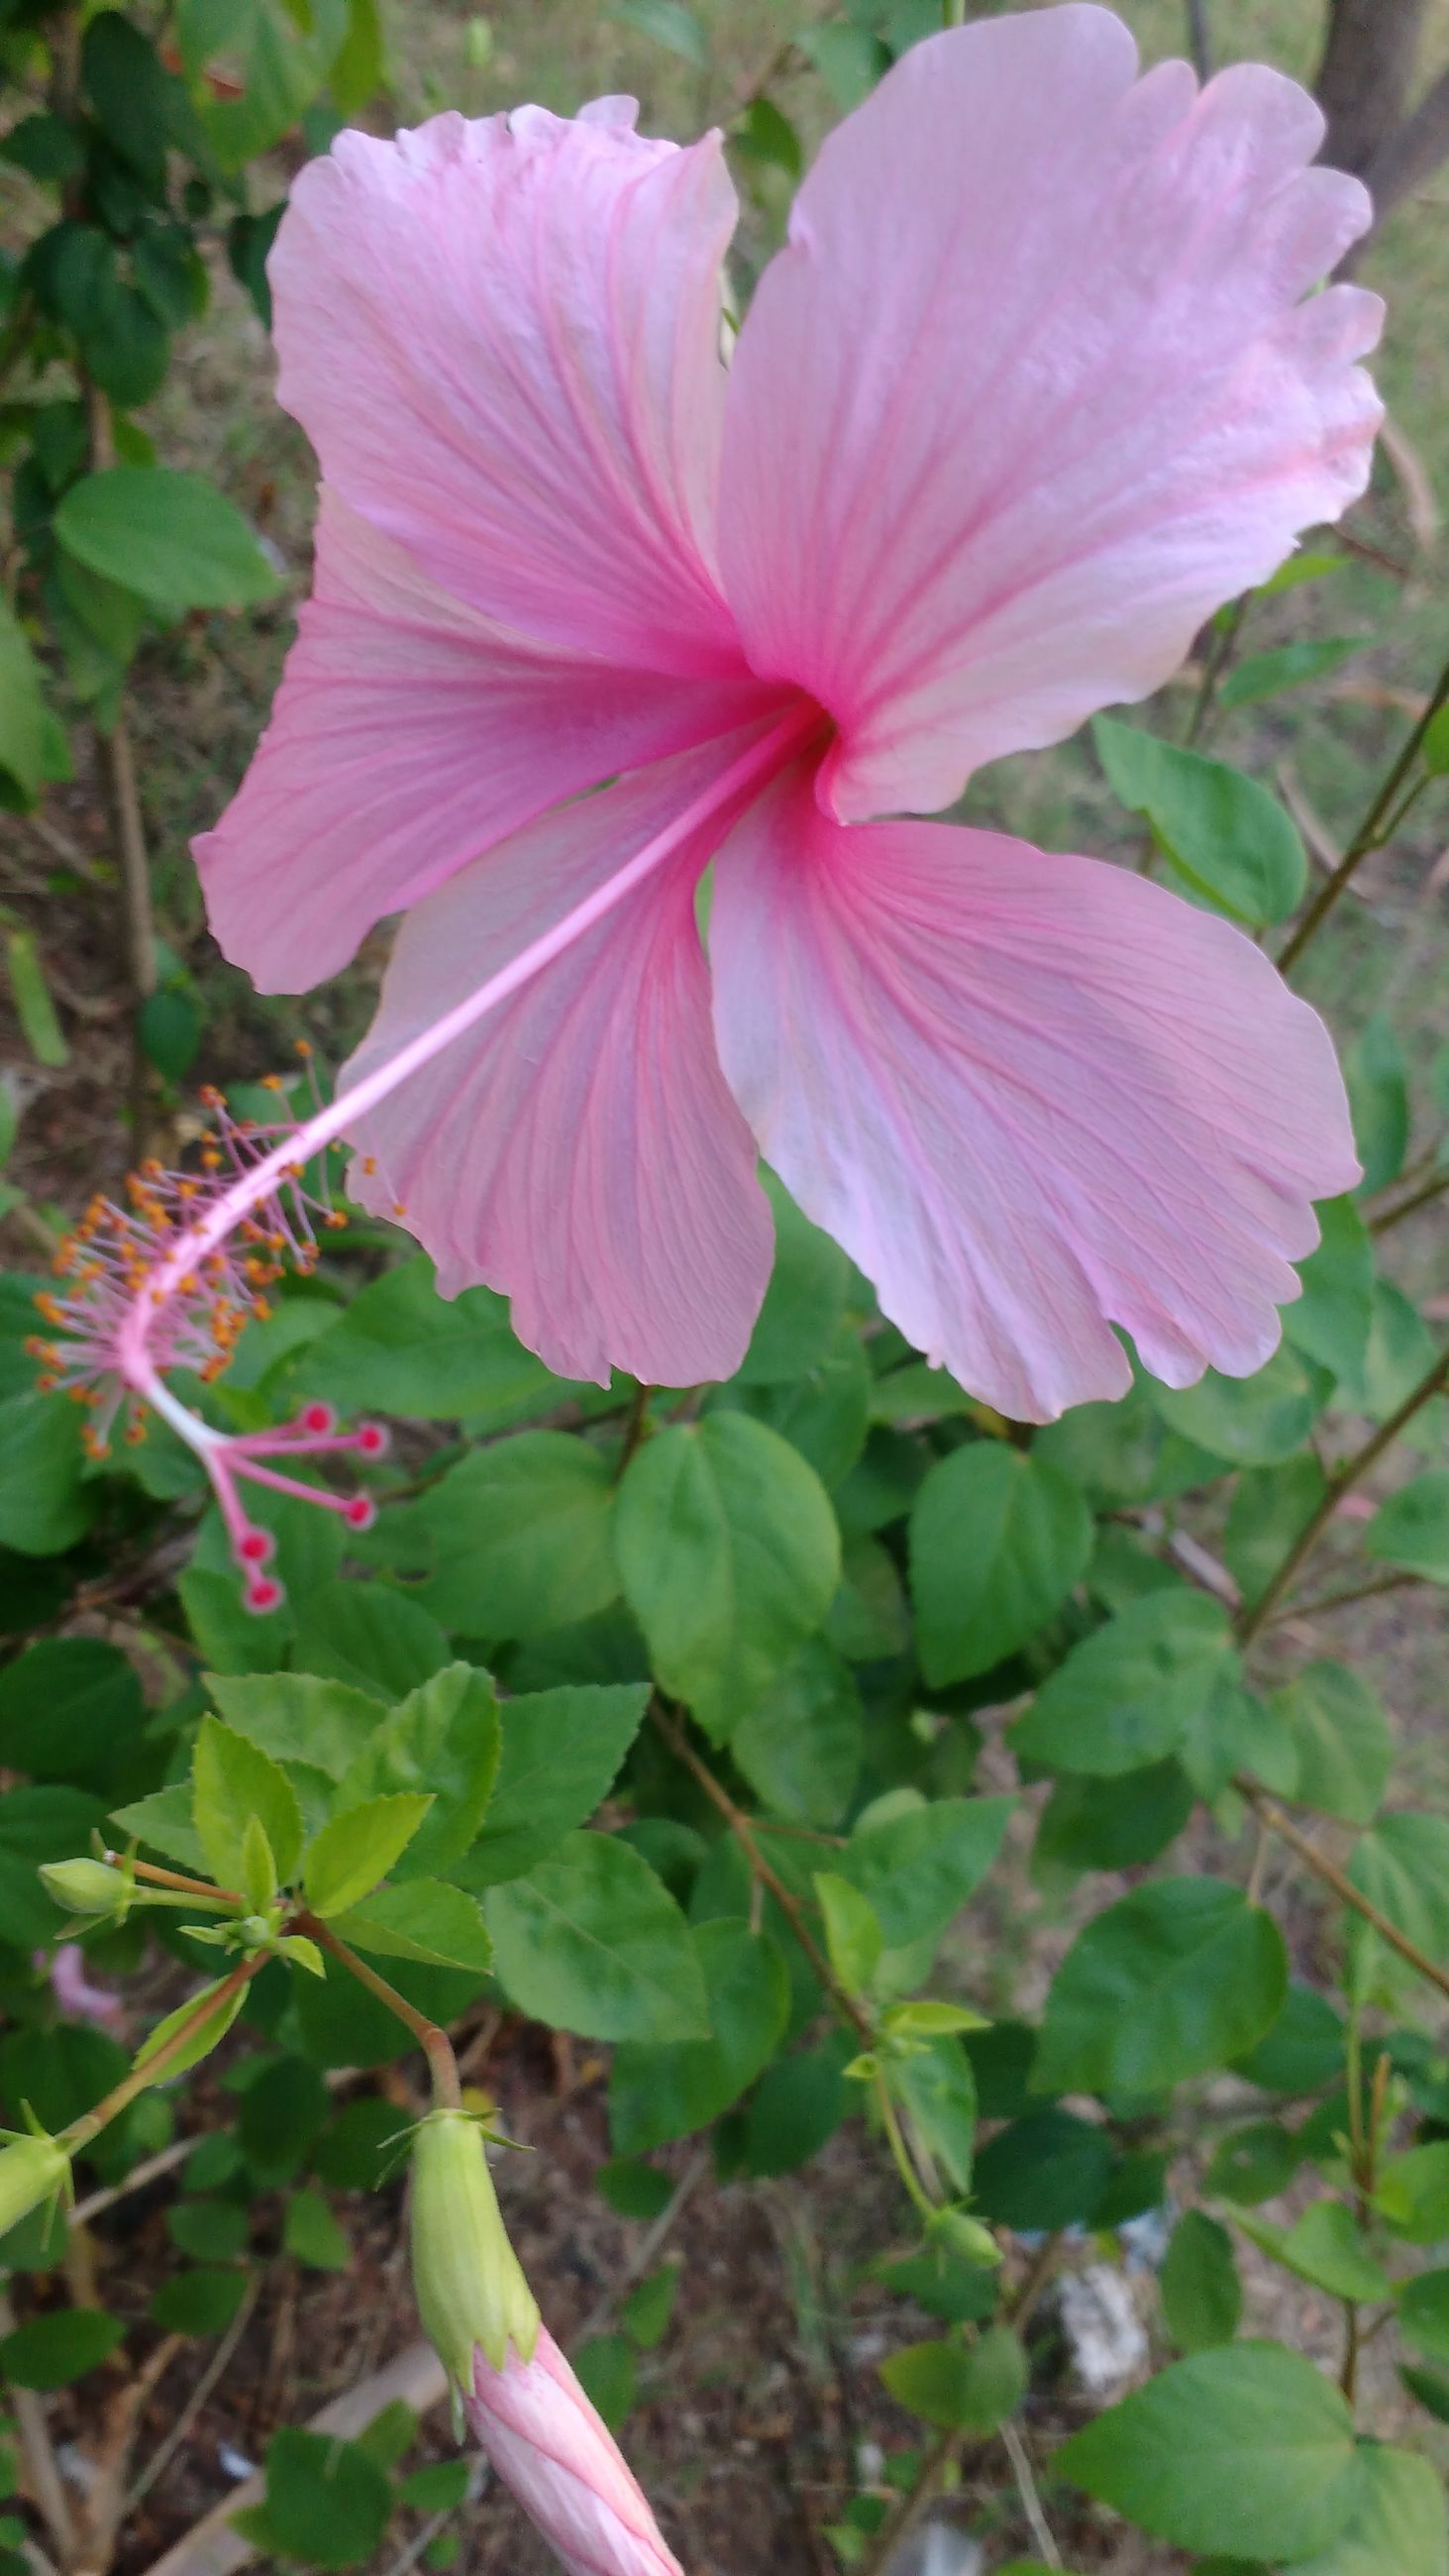 flower, freshness, pink color, petal, fragility, growth, flower head, beauty in nature, close-up, nature, plant, blooming, focus on foreground, leaf, pink, single flower, in bloom, outdoors, day, stamen